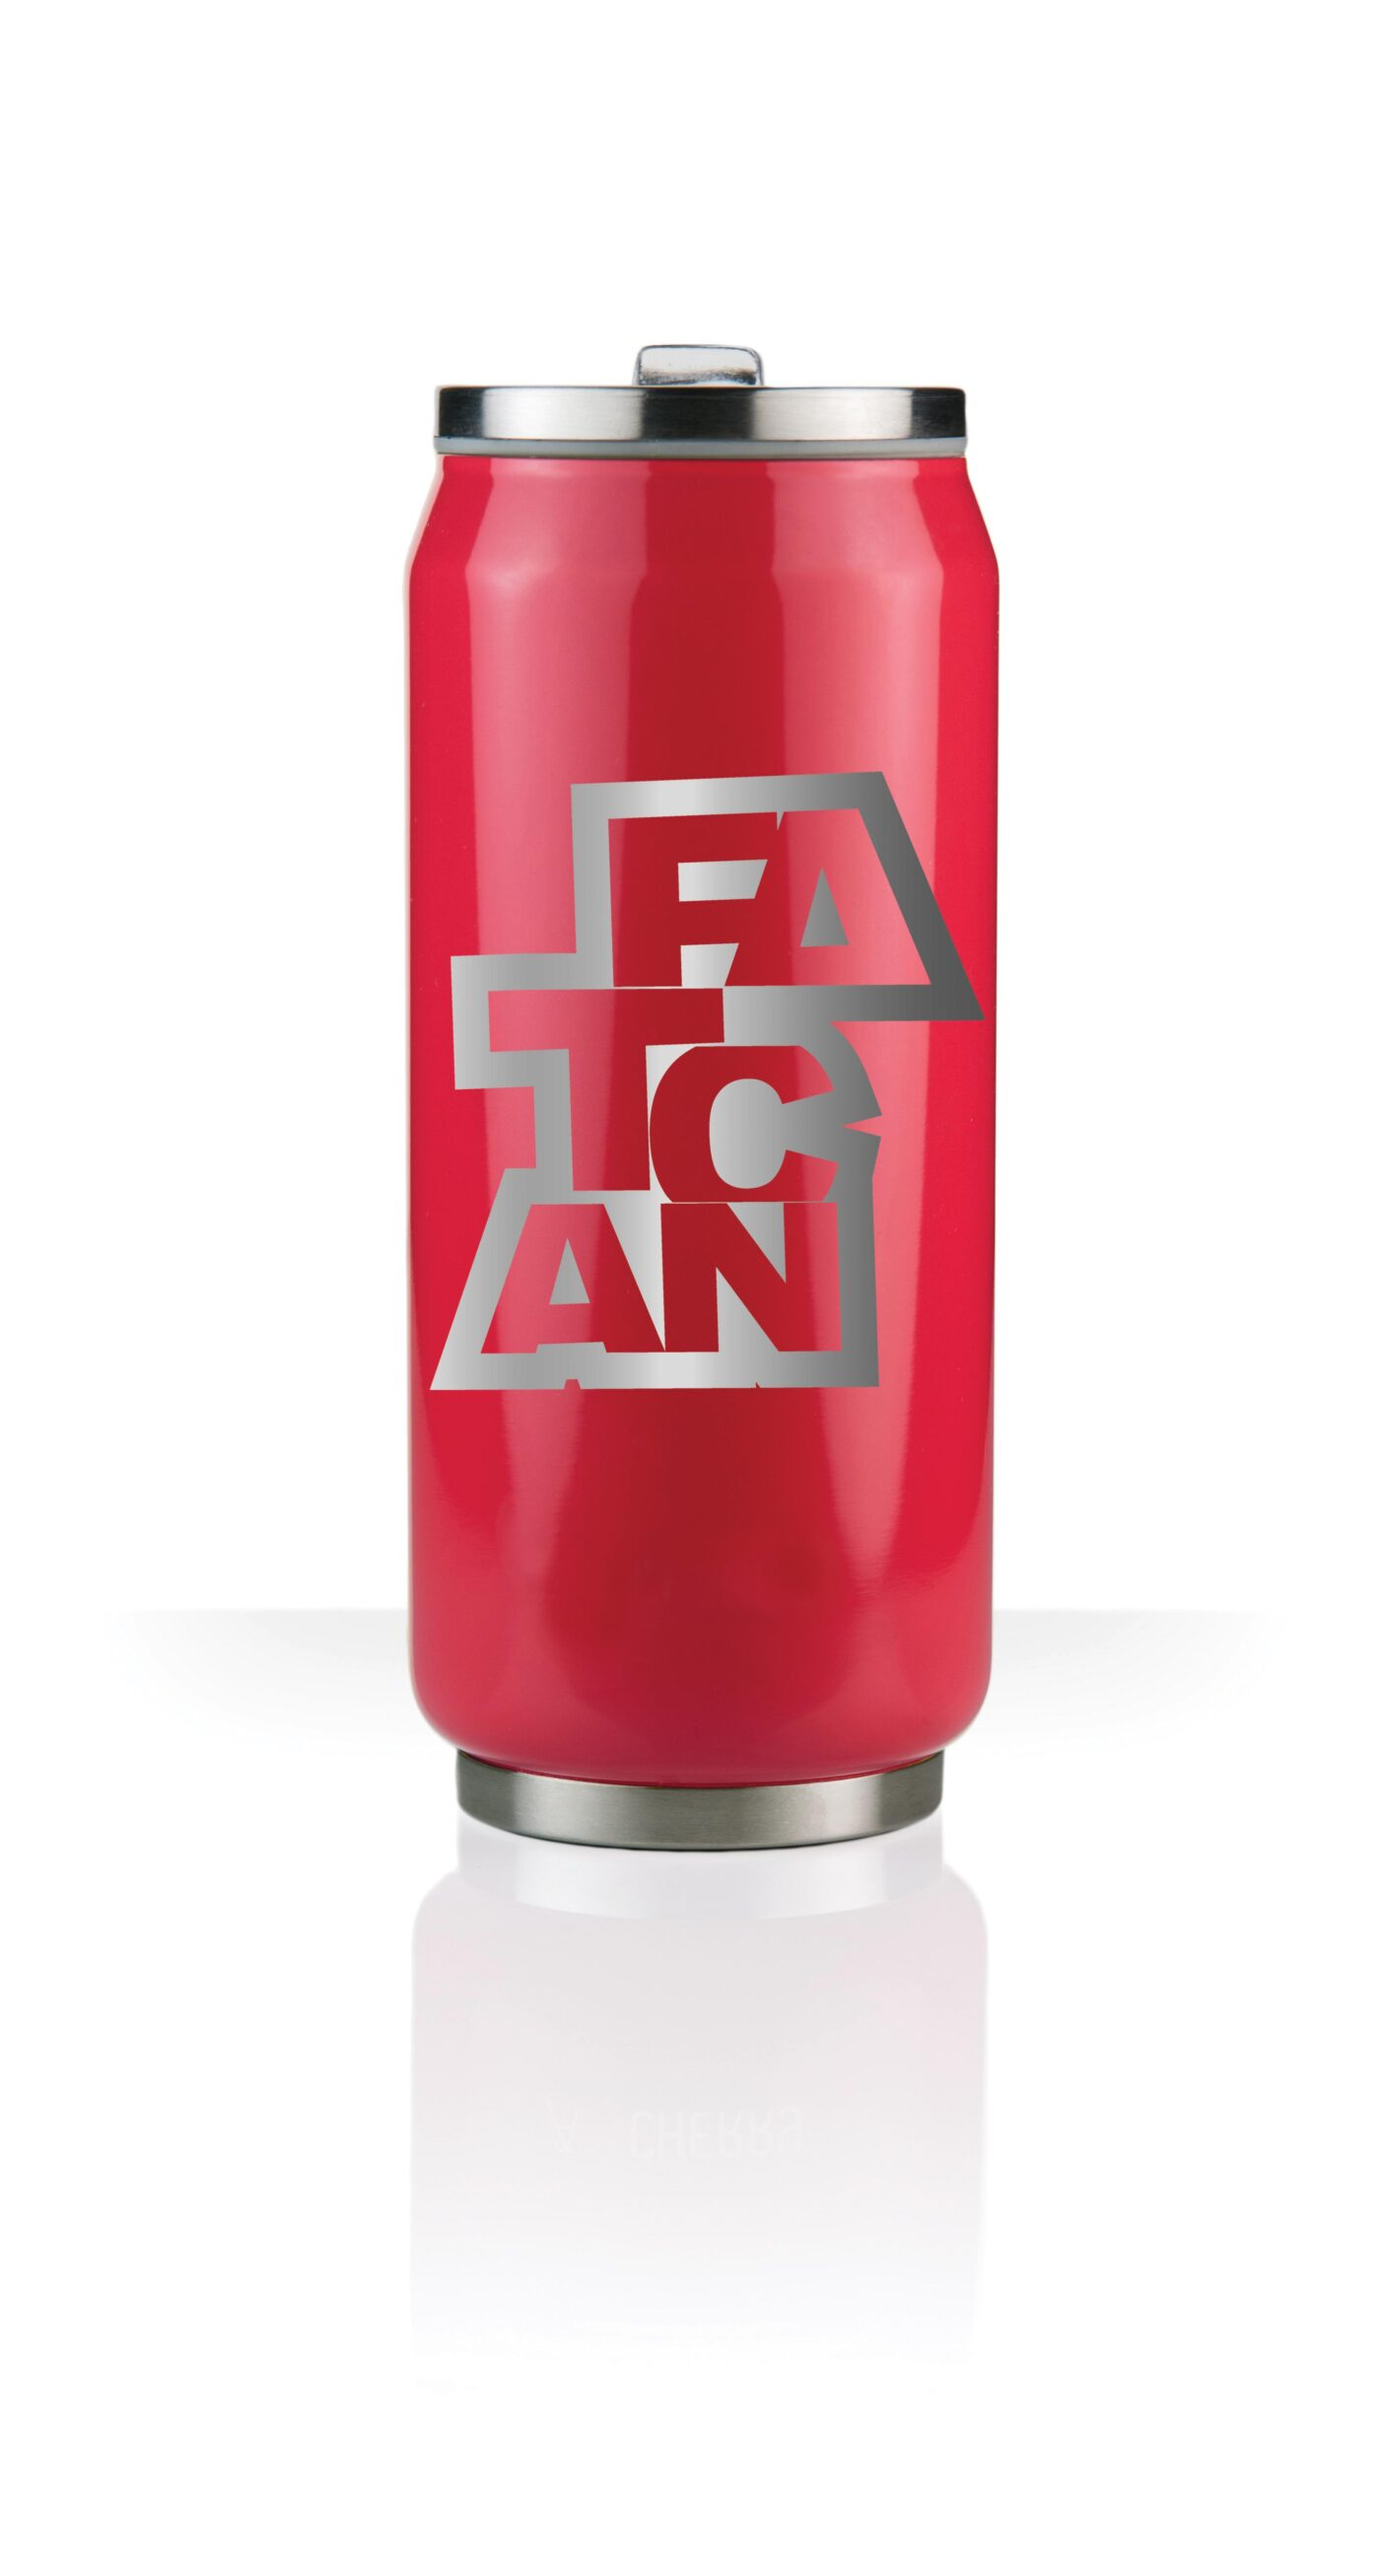 FATCAN_cherry_050